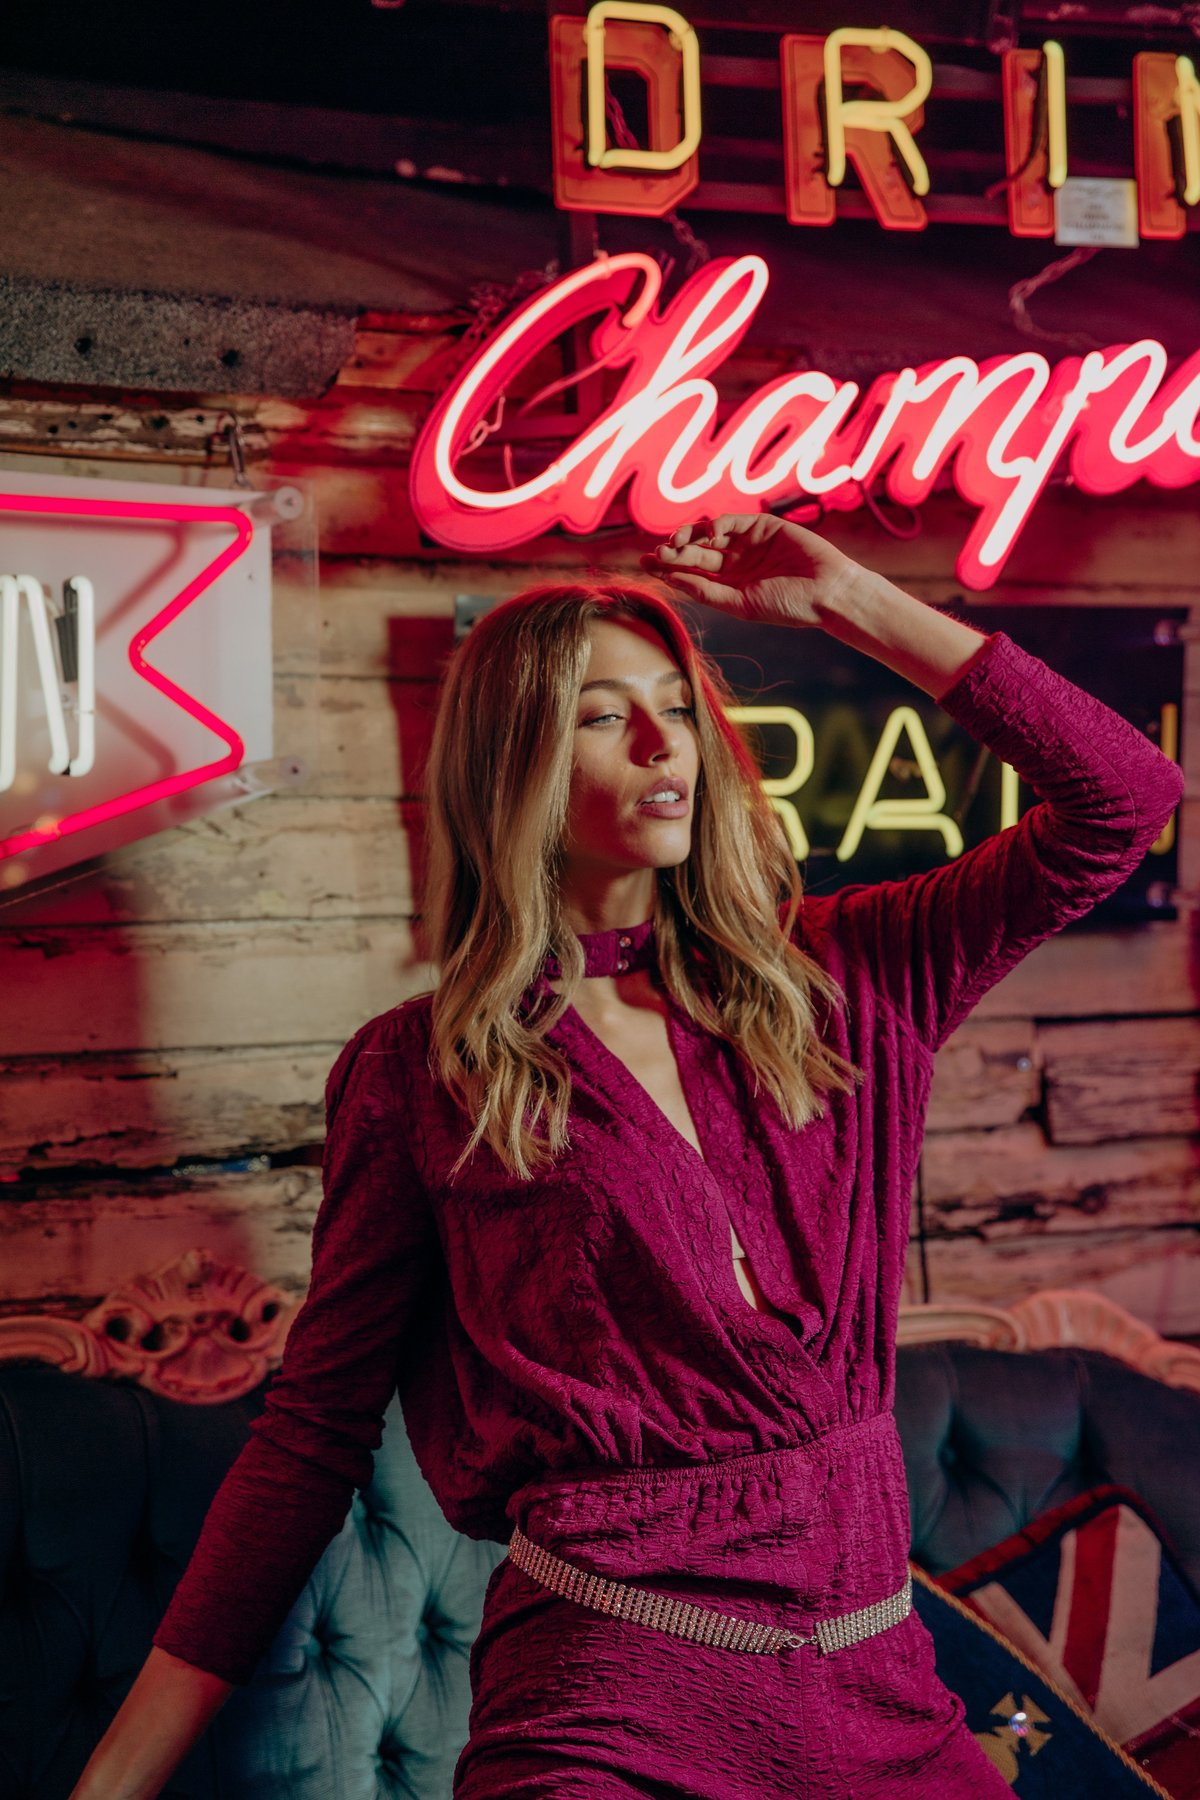 Anastazja wearing a pink jumpsuit kneeling on a blue sofa surrounded by neon signs.